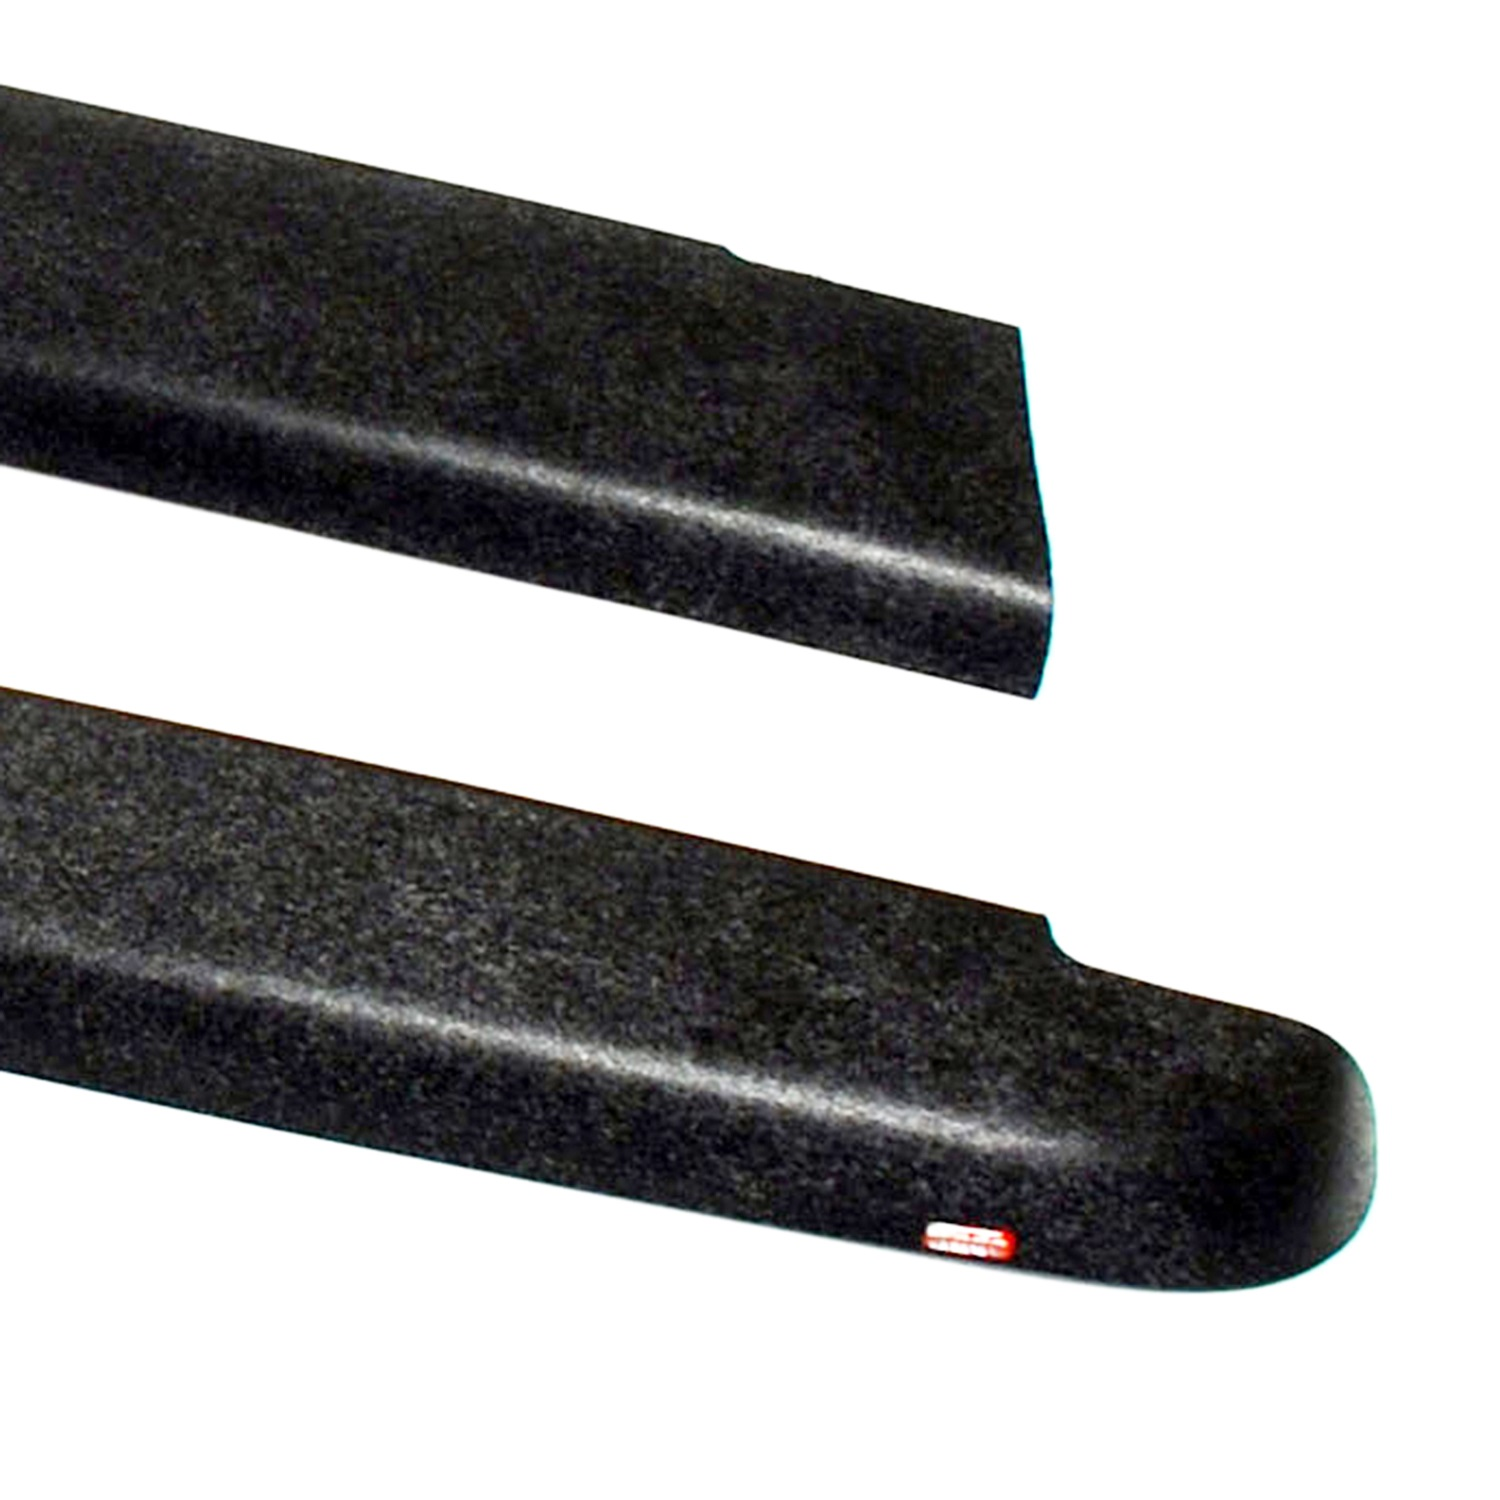 New Westin Wade Truck Bed Side Rail Protector